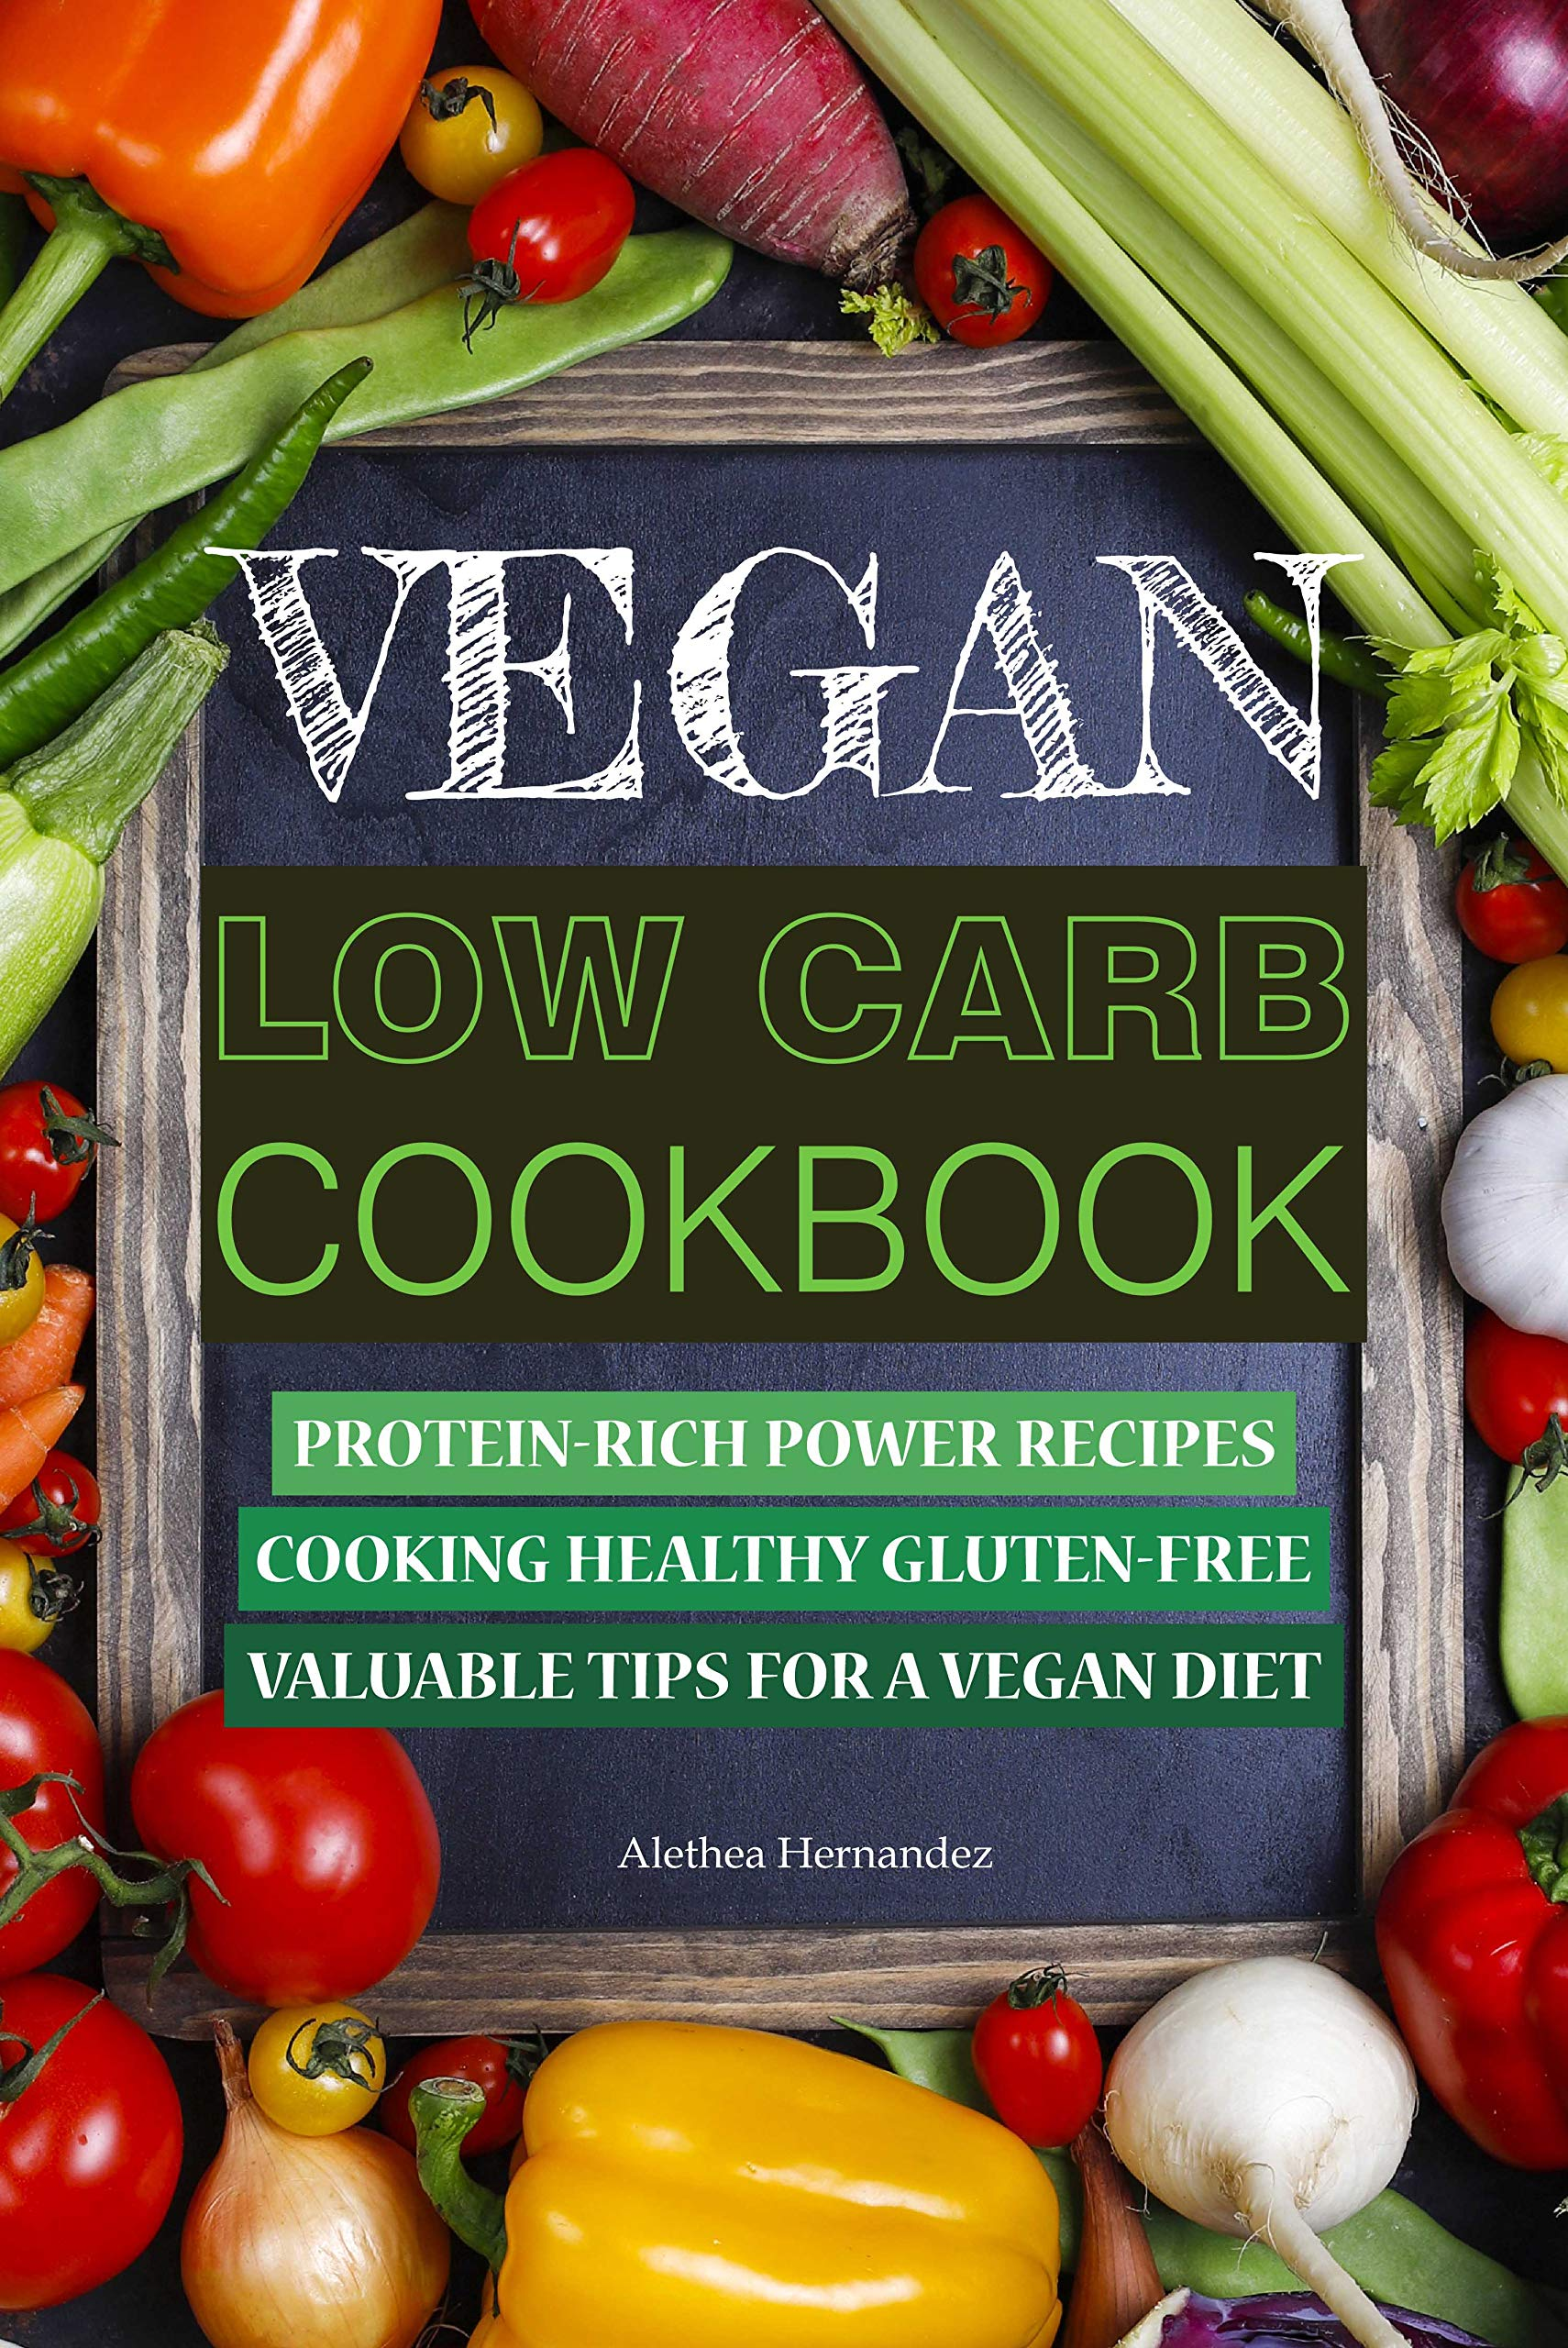 Vegan low carb Cookbook: Protein-rich power recipes. Cooking healthy gluten-free. Valuable tips for a vegan diet